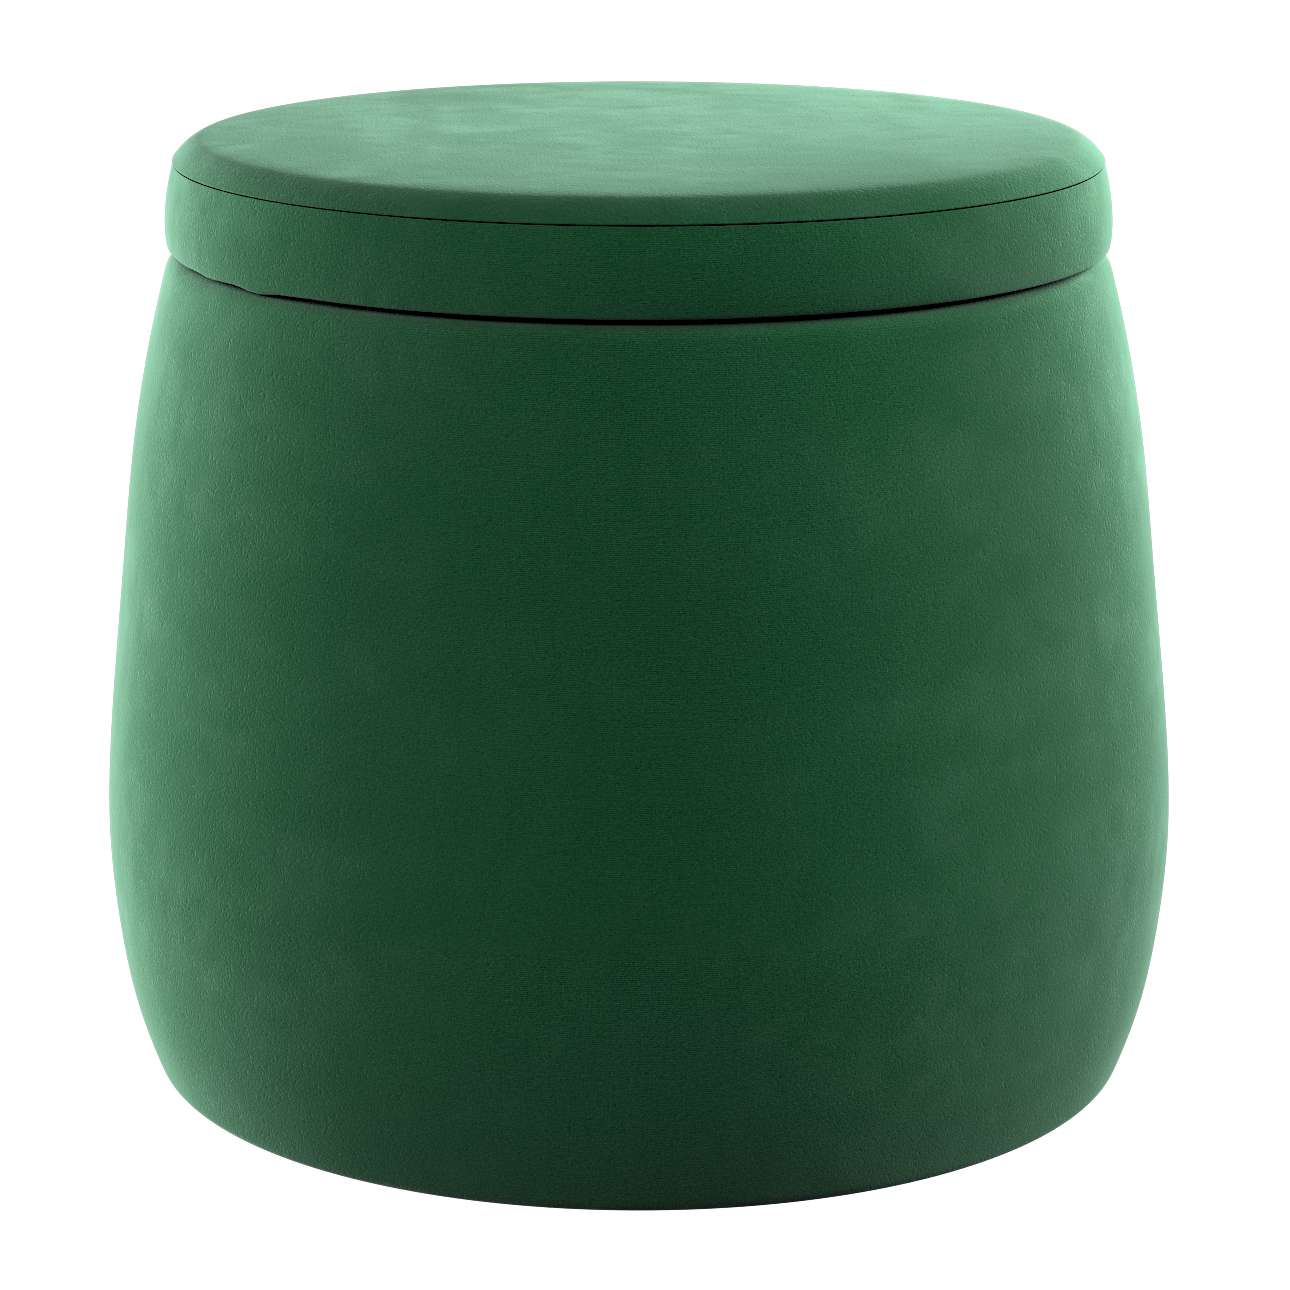 Candy Jar pouf in collection Posh Velvet, fabric: 704-13